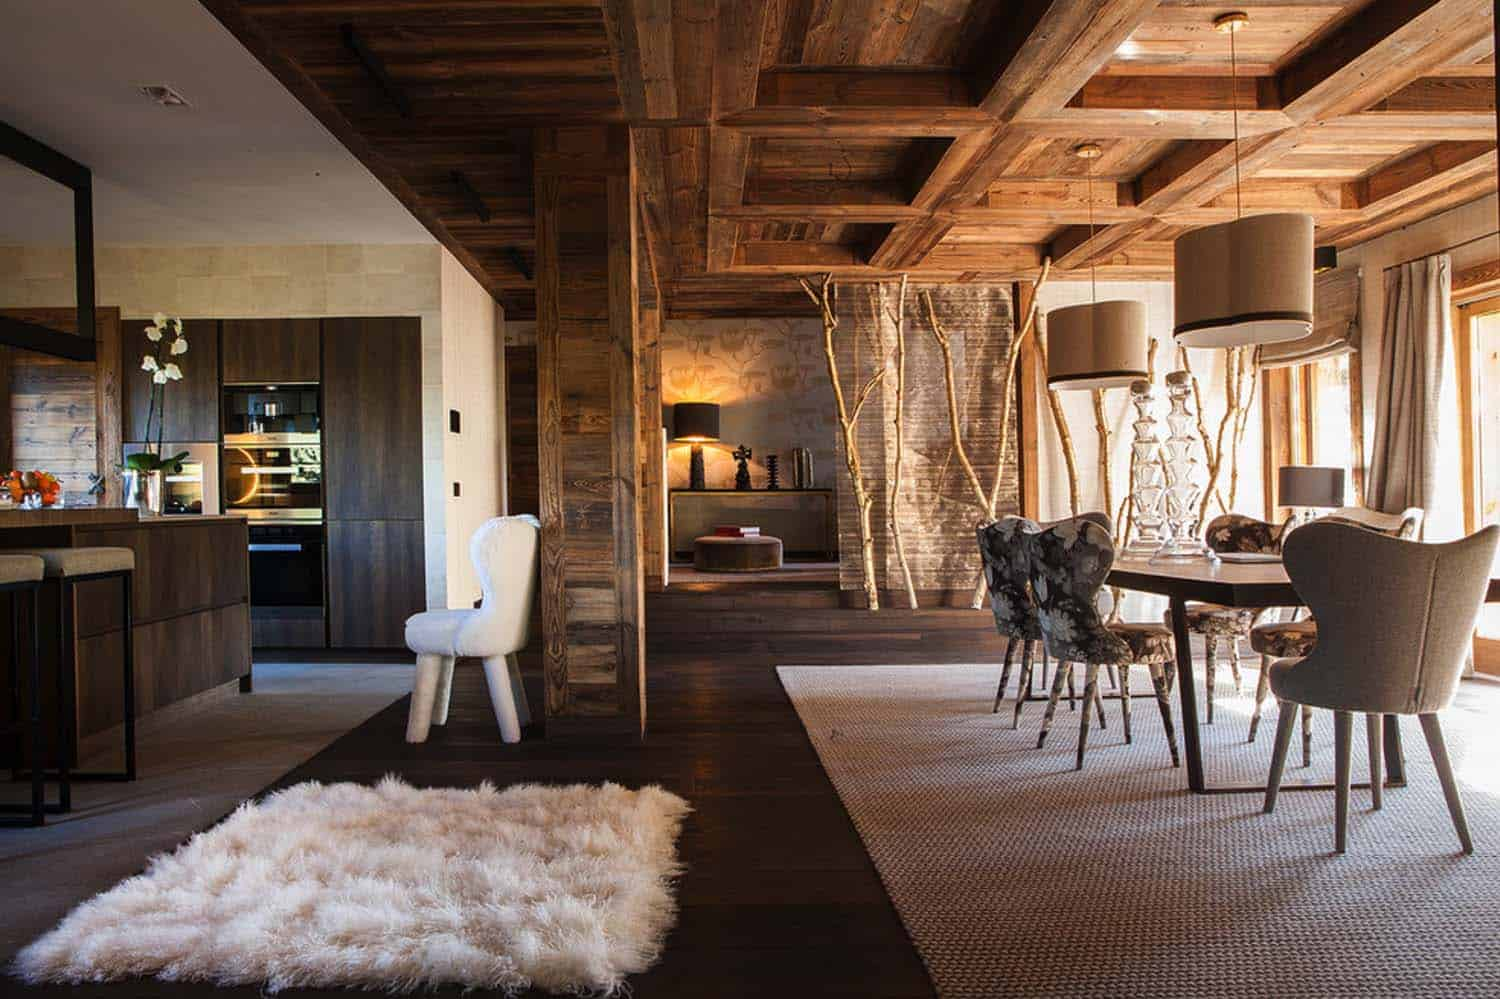 luxury-mountain-chalet-refuge-02-1-kindesign